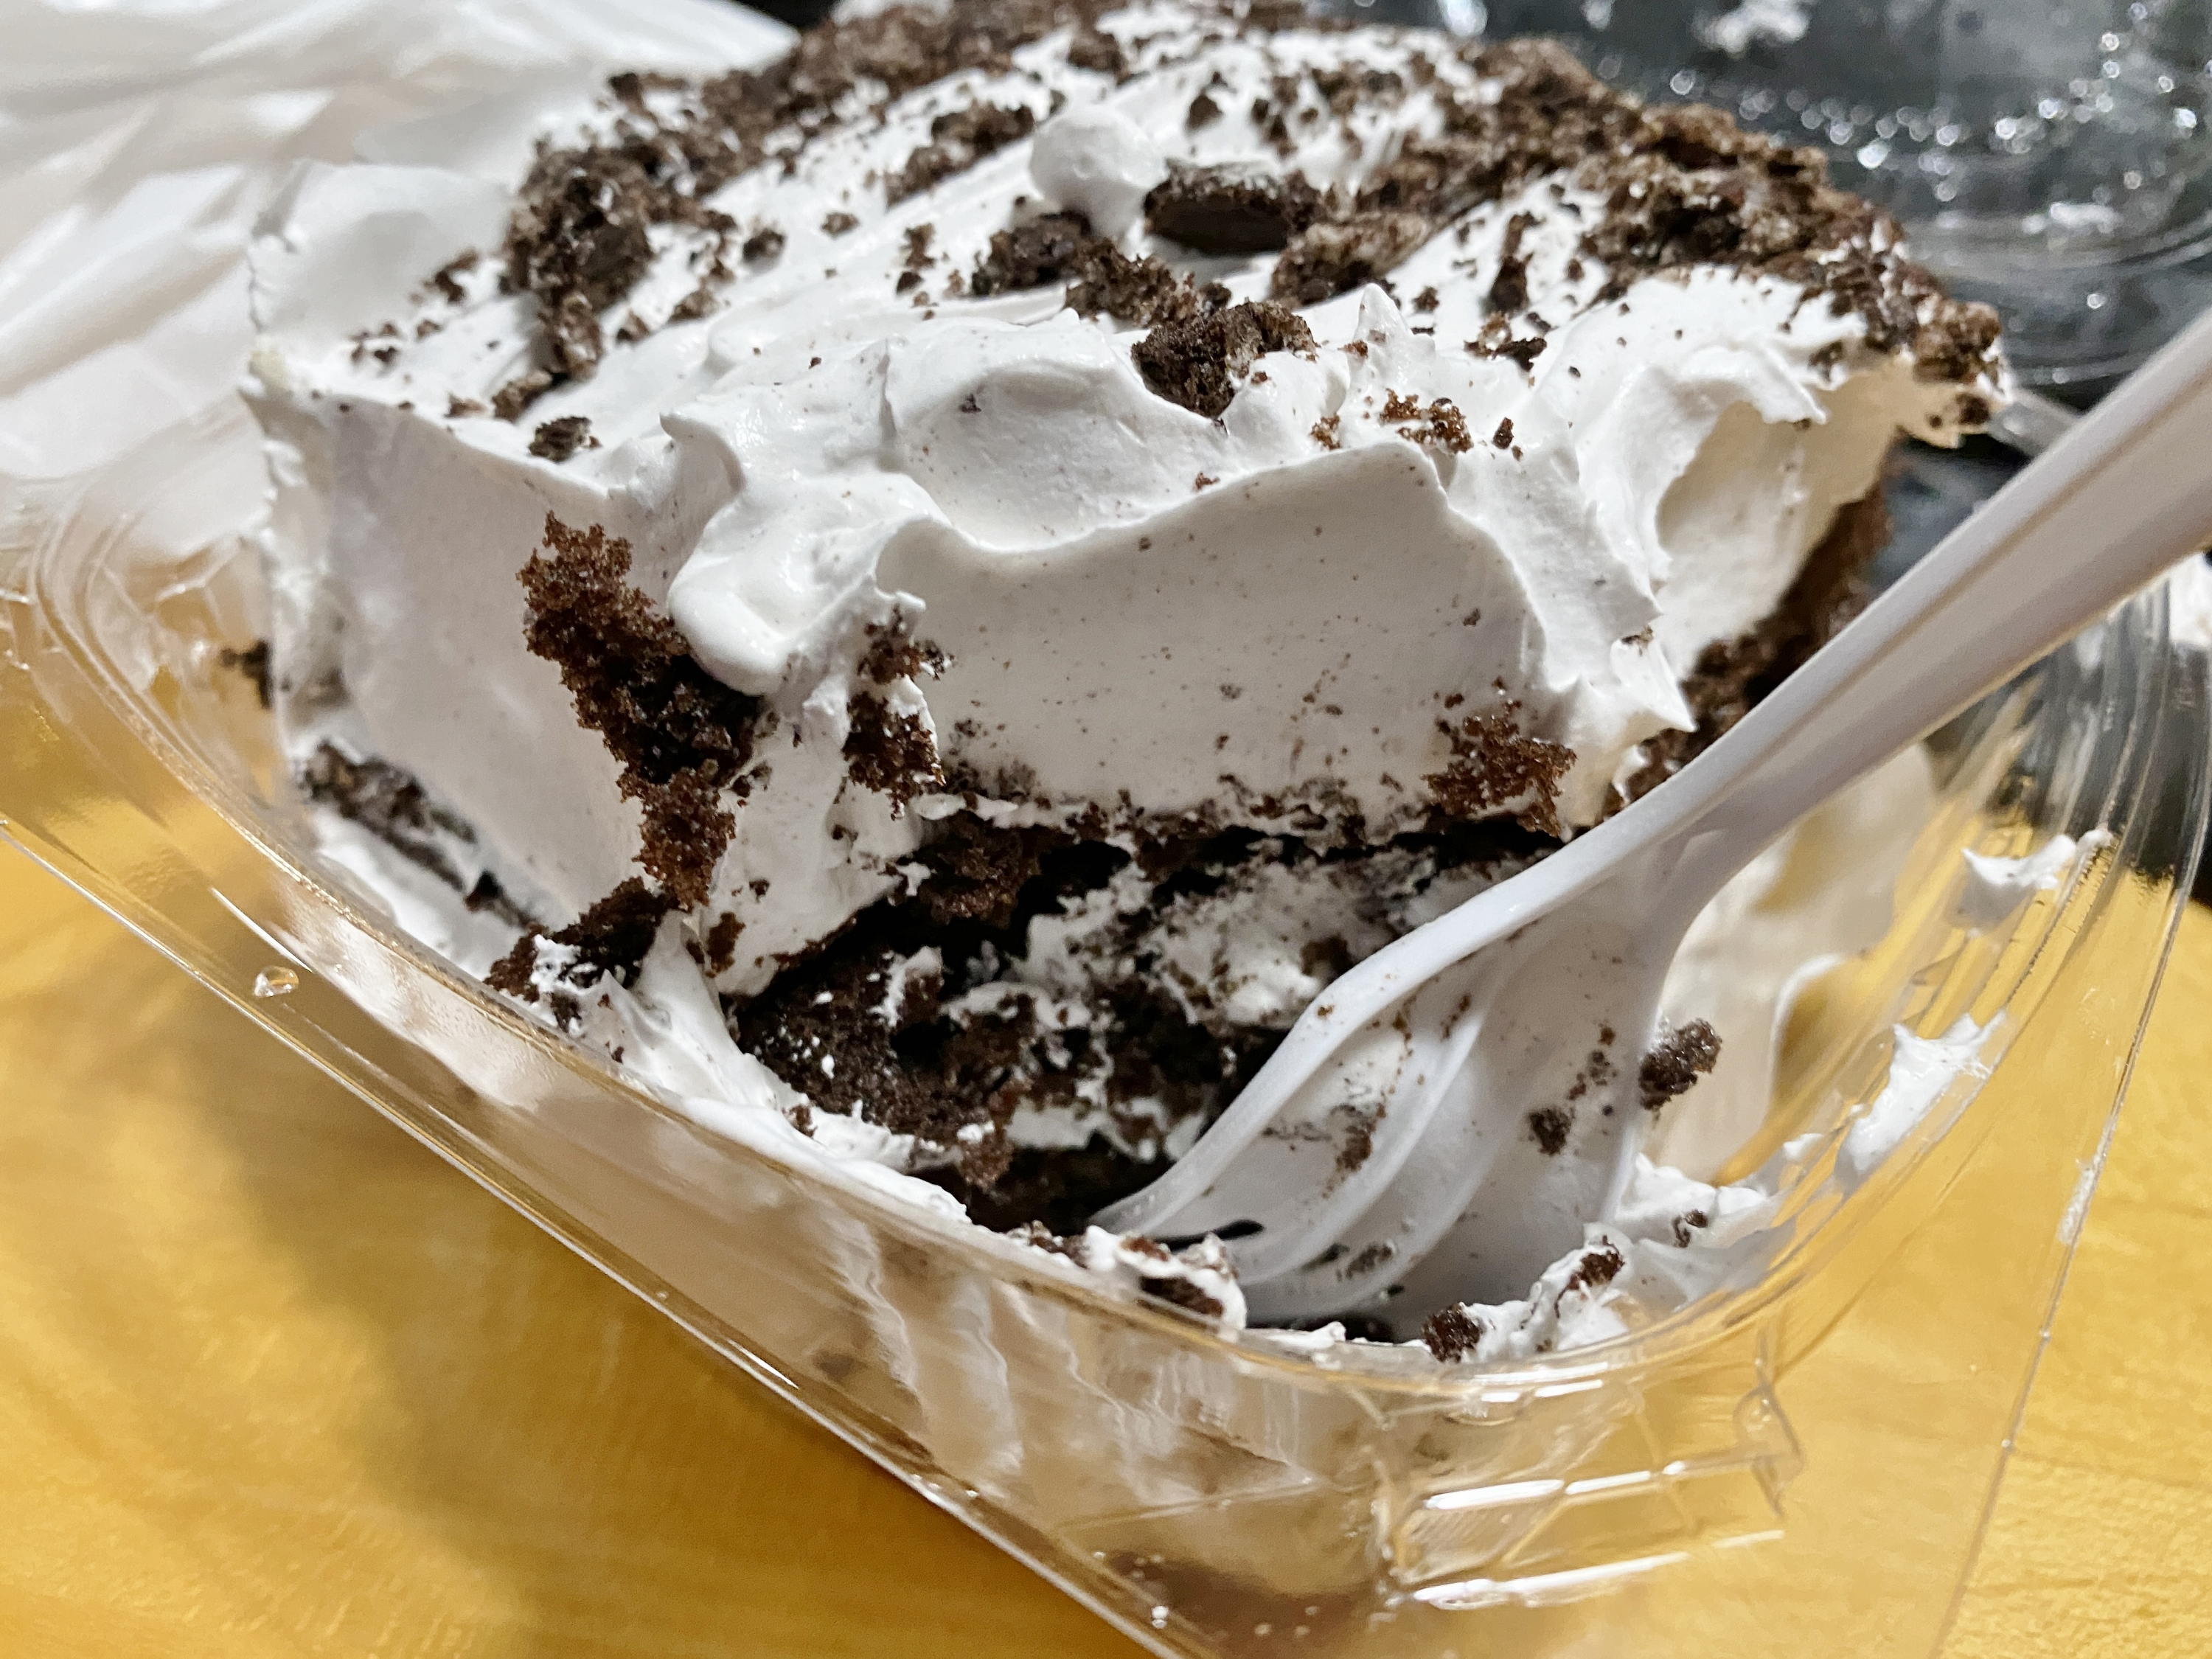 Oreo brick from Bova's - incredibly delicous!